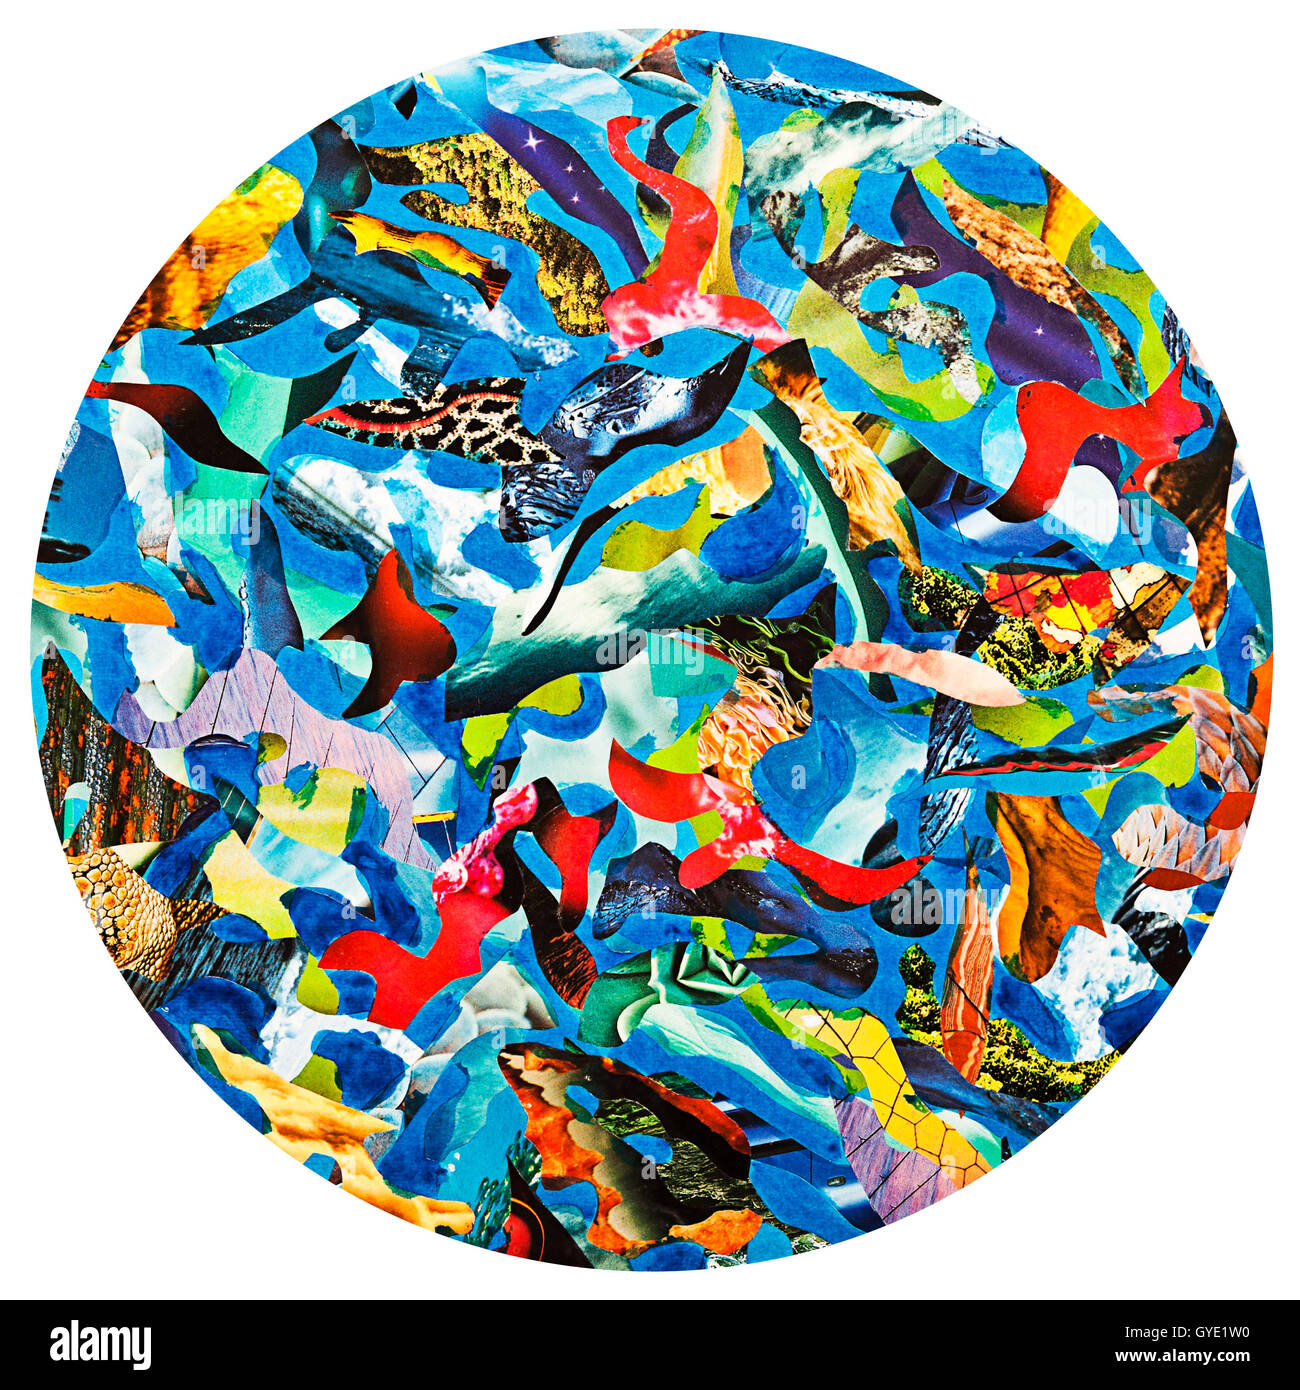 abstract circle collage - Stock Image